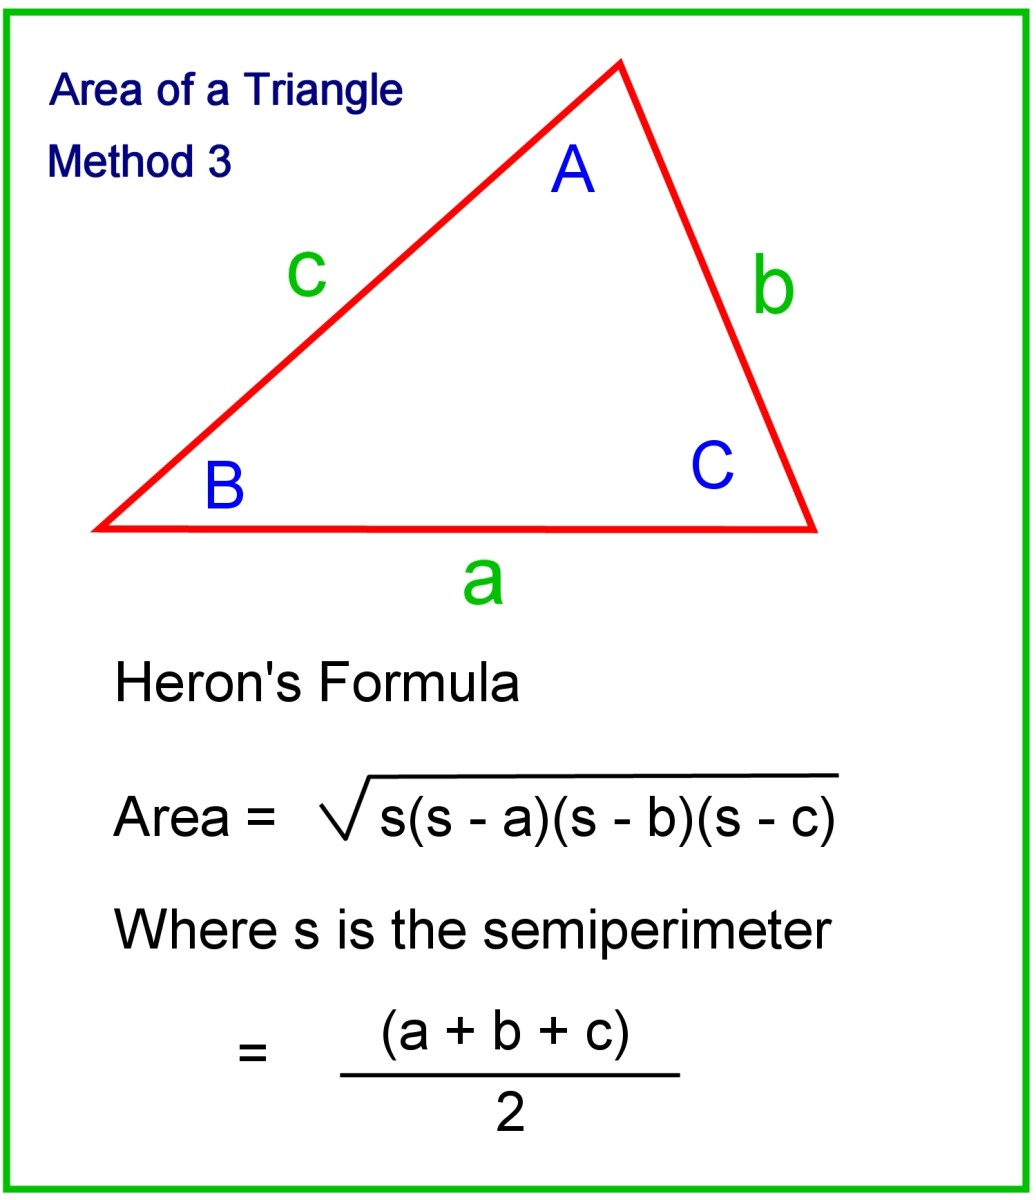 Calculation of area using Heron's formula